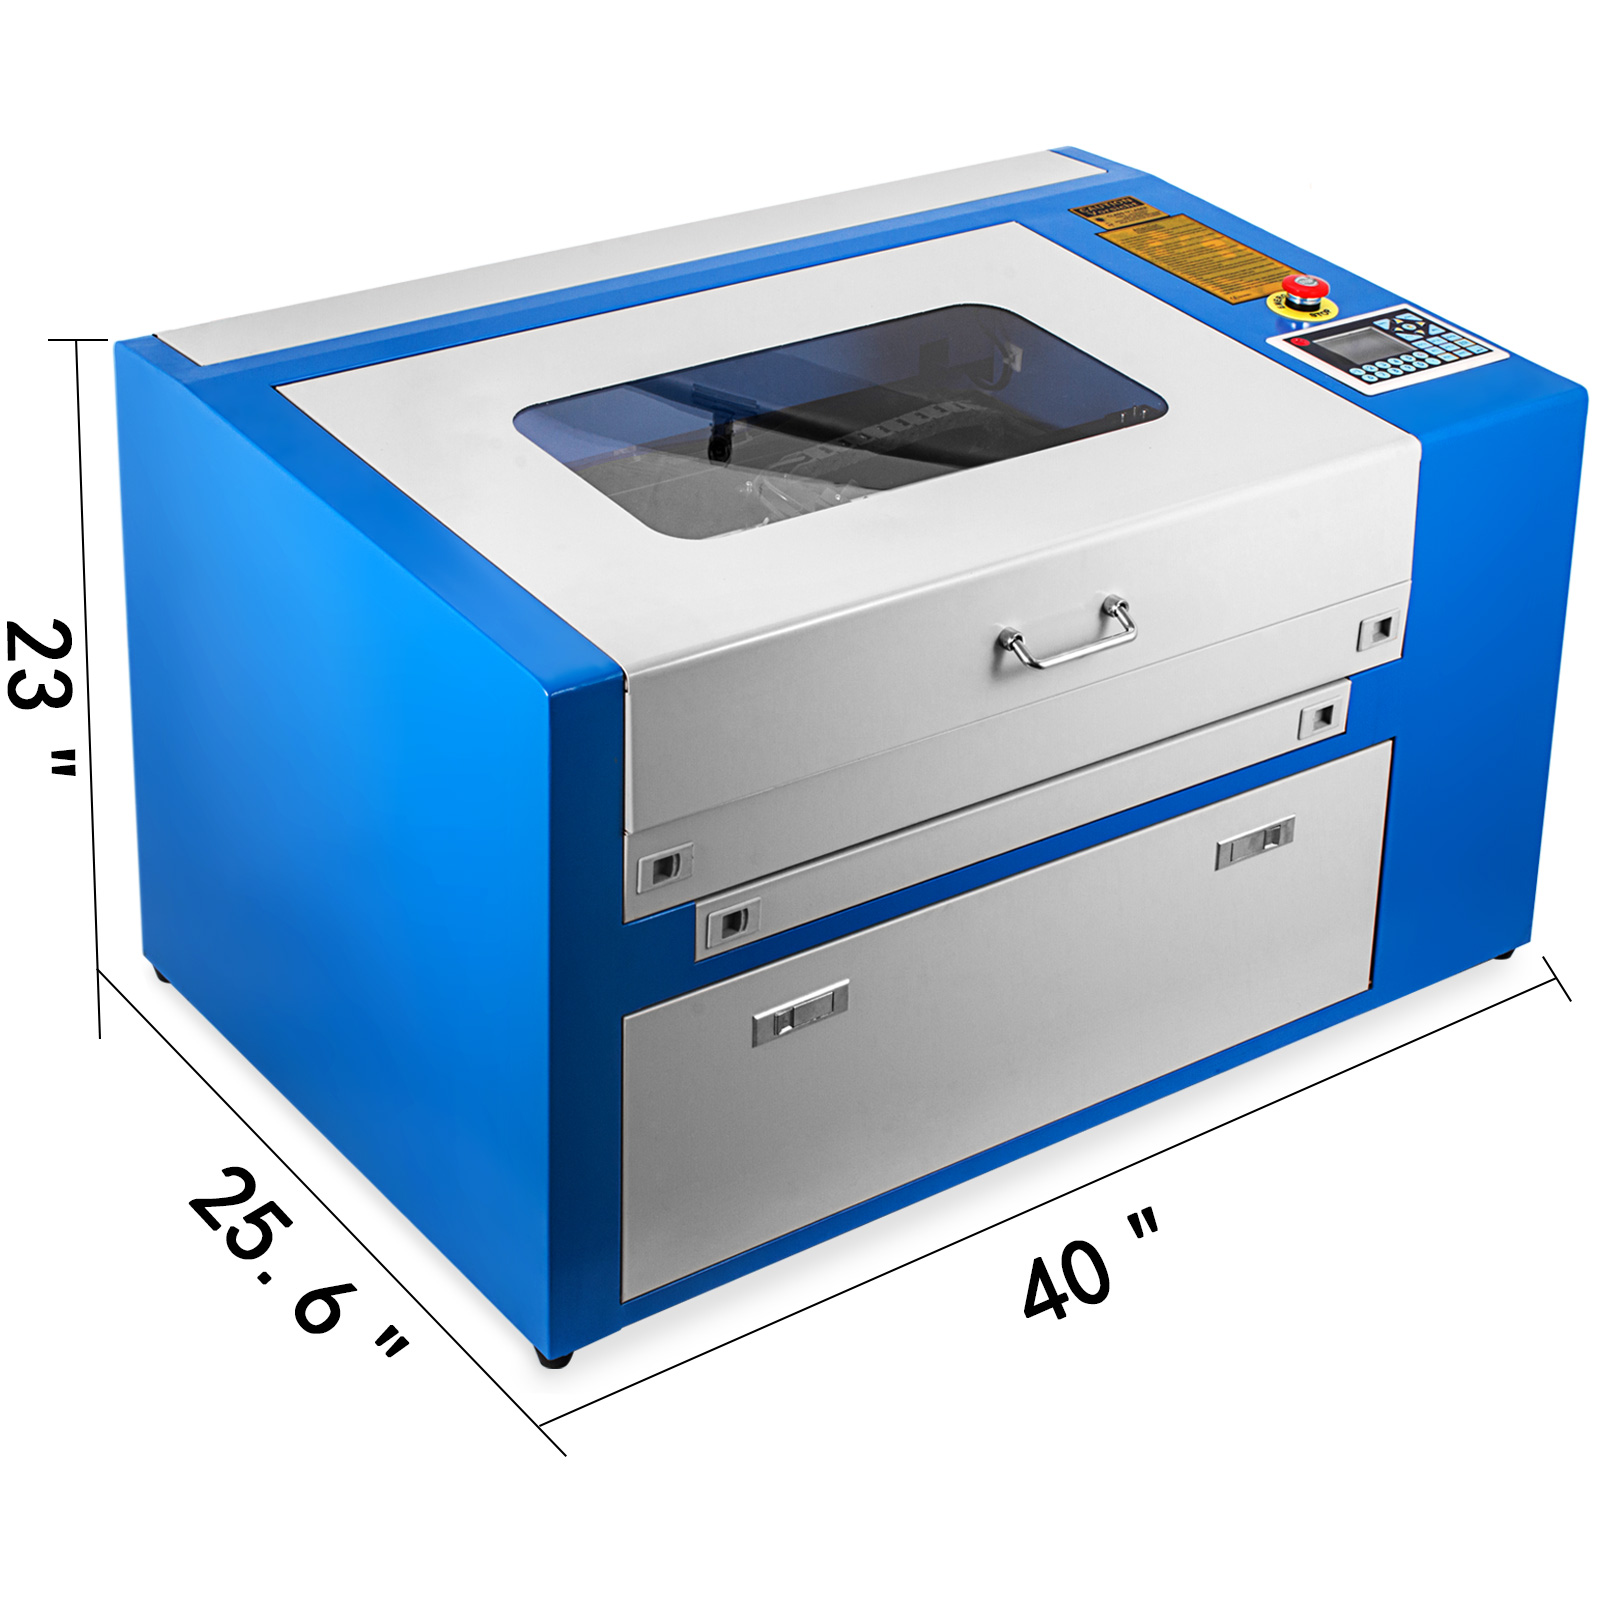 CO2-Usb-Laser-Engraving-Cutting-Machine-Engraver-Cutter-Air-Assist-Carving thumbnail 25